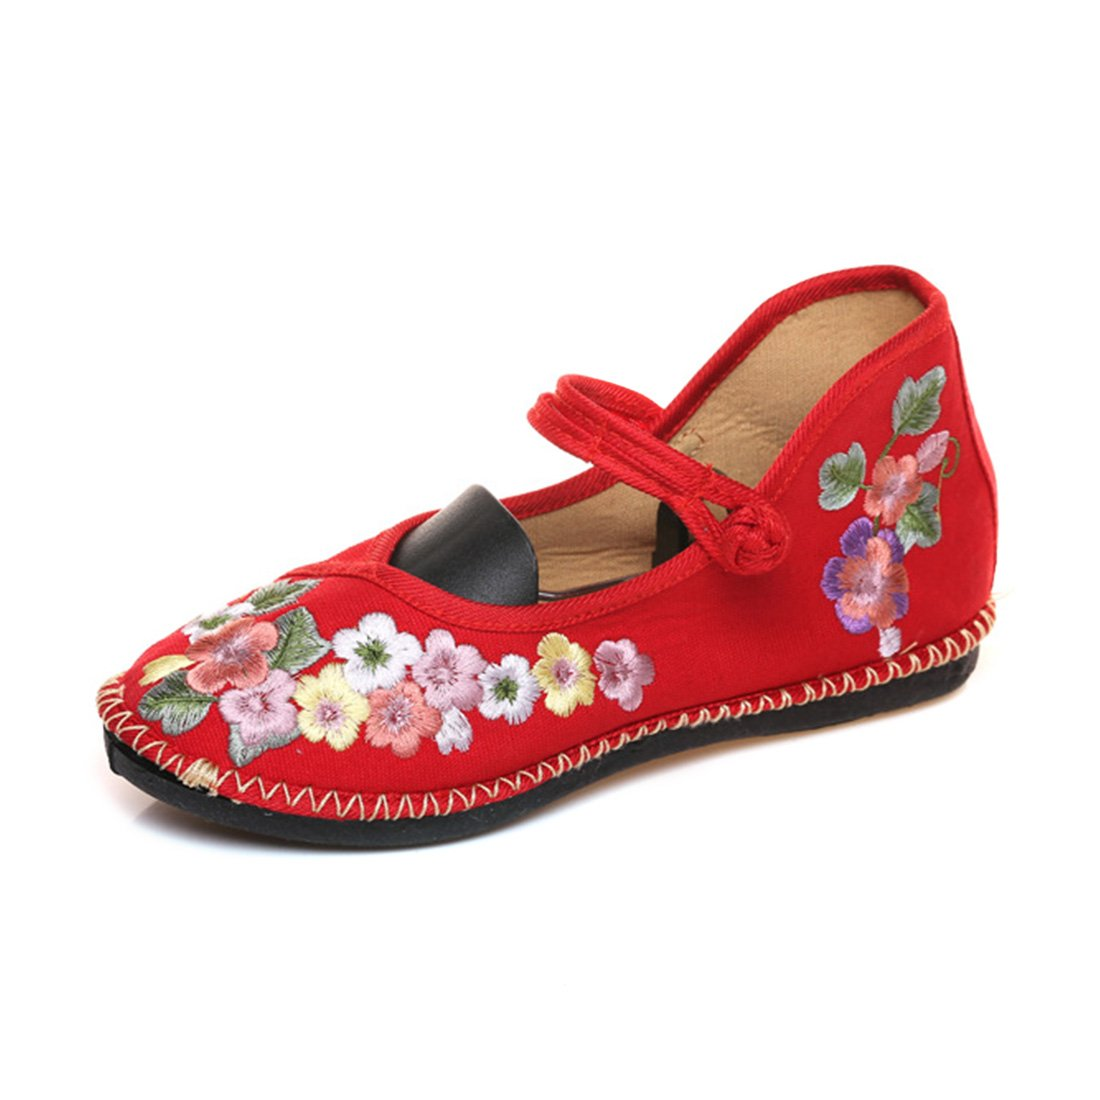 YIBLBOX Women's Chinese Strap Mary Jane Flats Shoes Strappy Summer Small Flowers Embroidery Dress Shoes